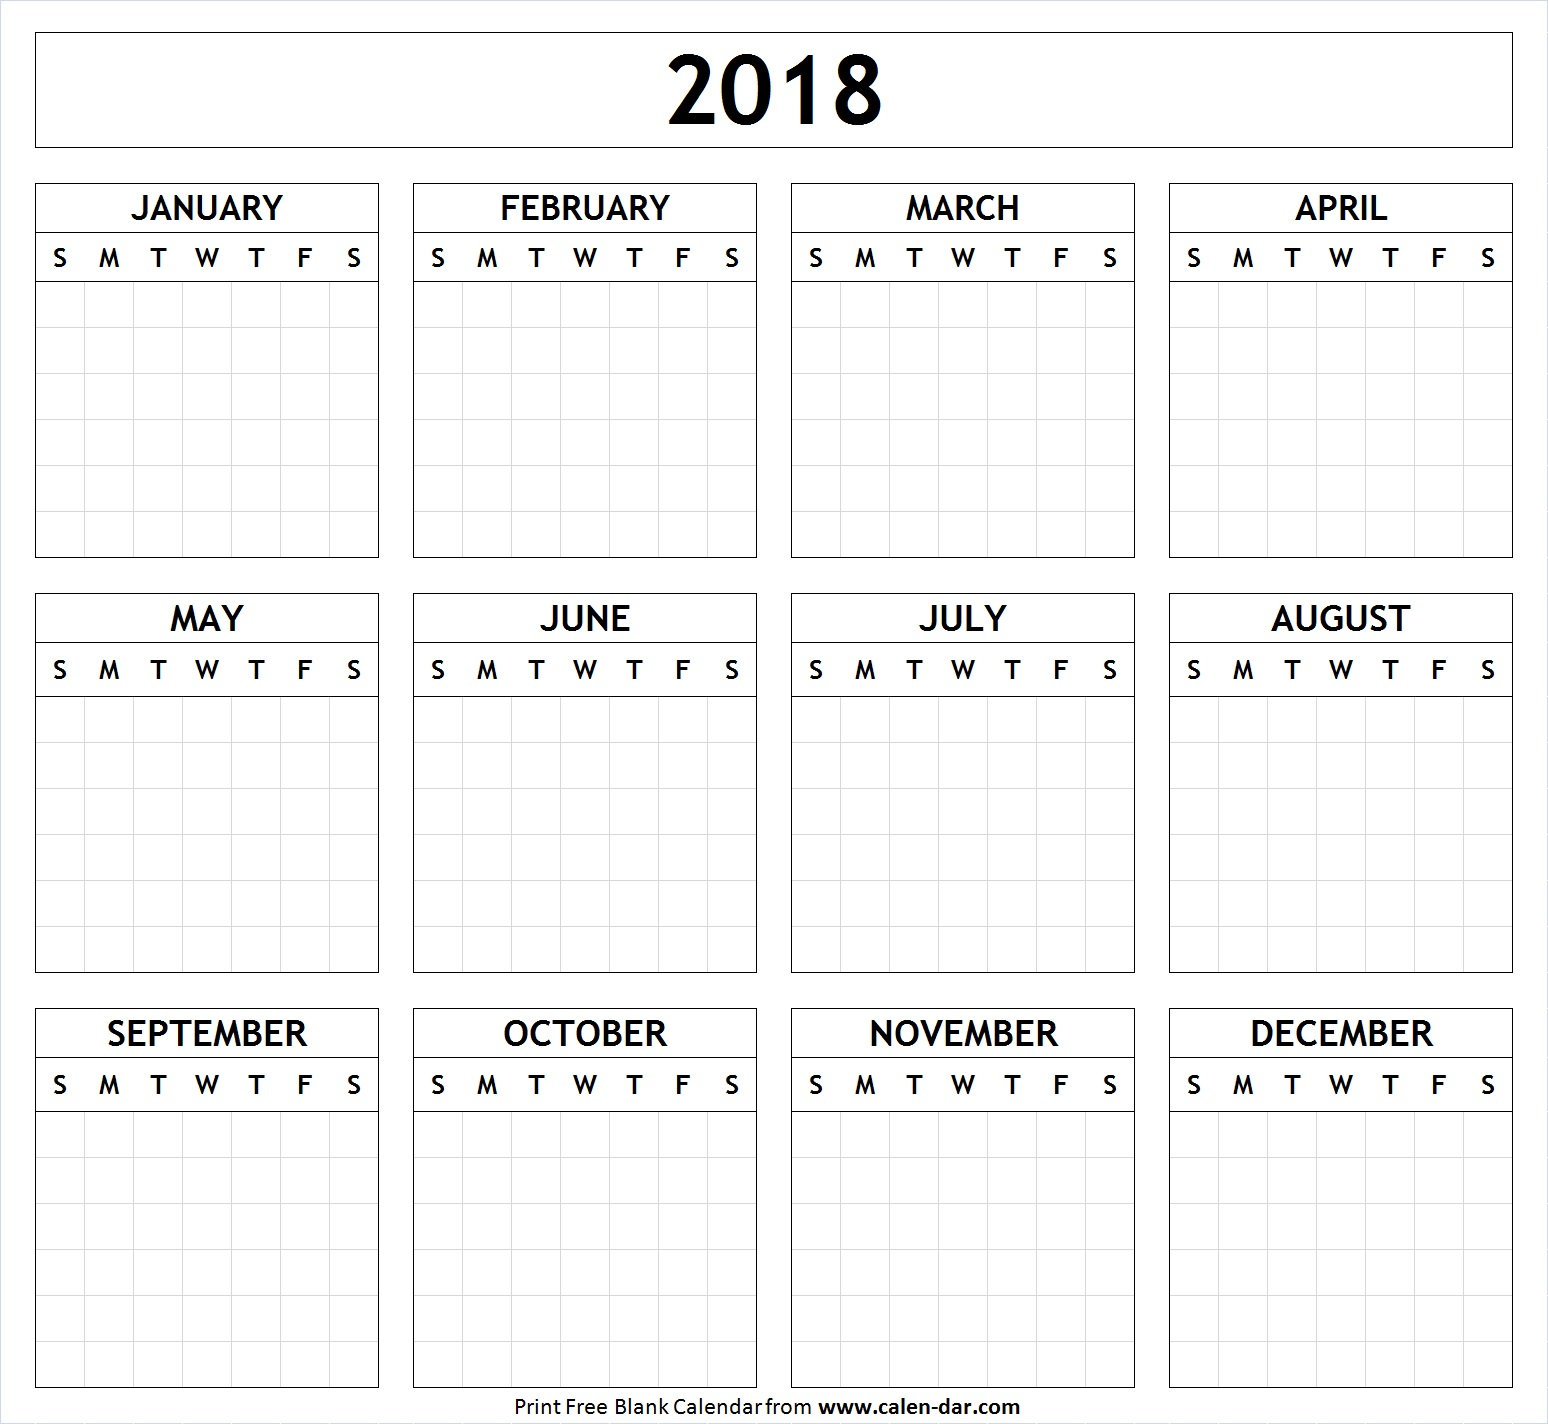 2018 calendar editable,2018 calendar with notes,2018 calendar holidays,2018 calendar printable,2018 calendar templates, 2018 calendar blank